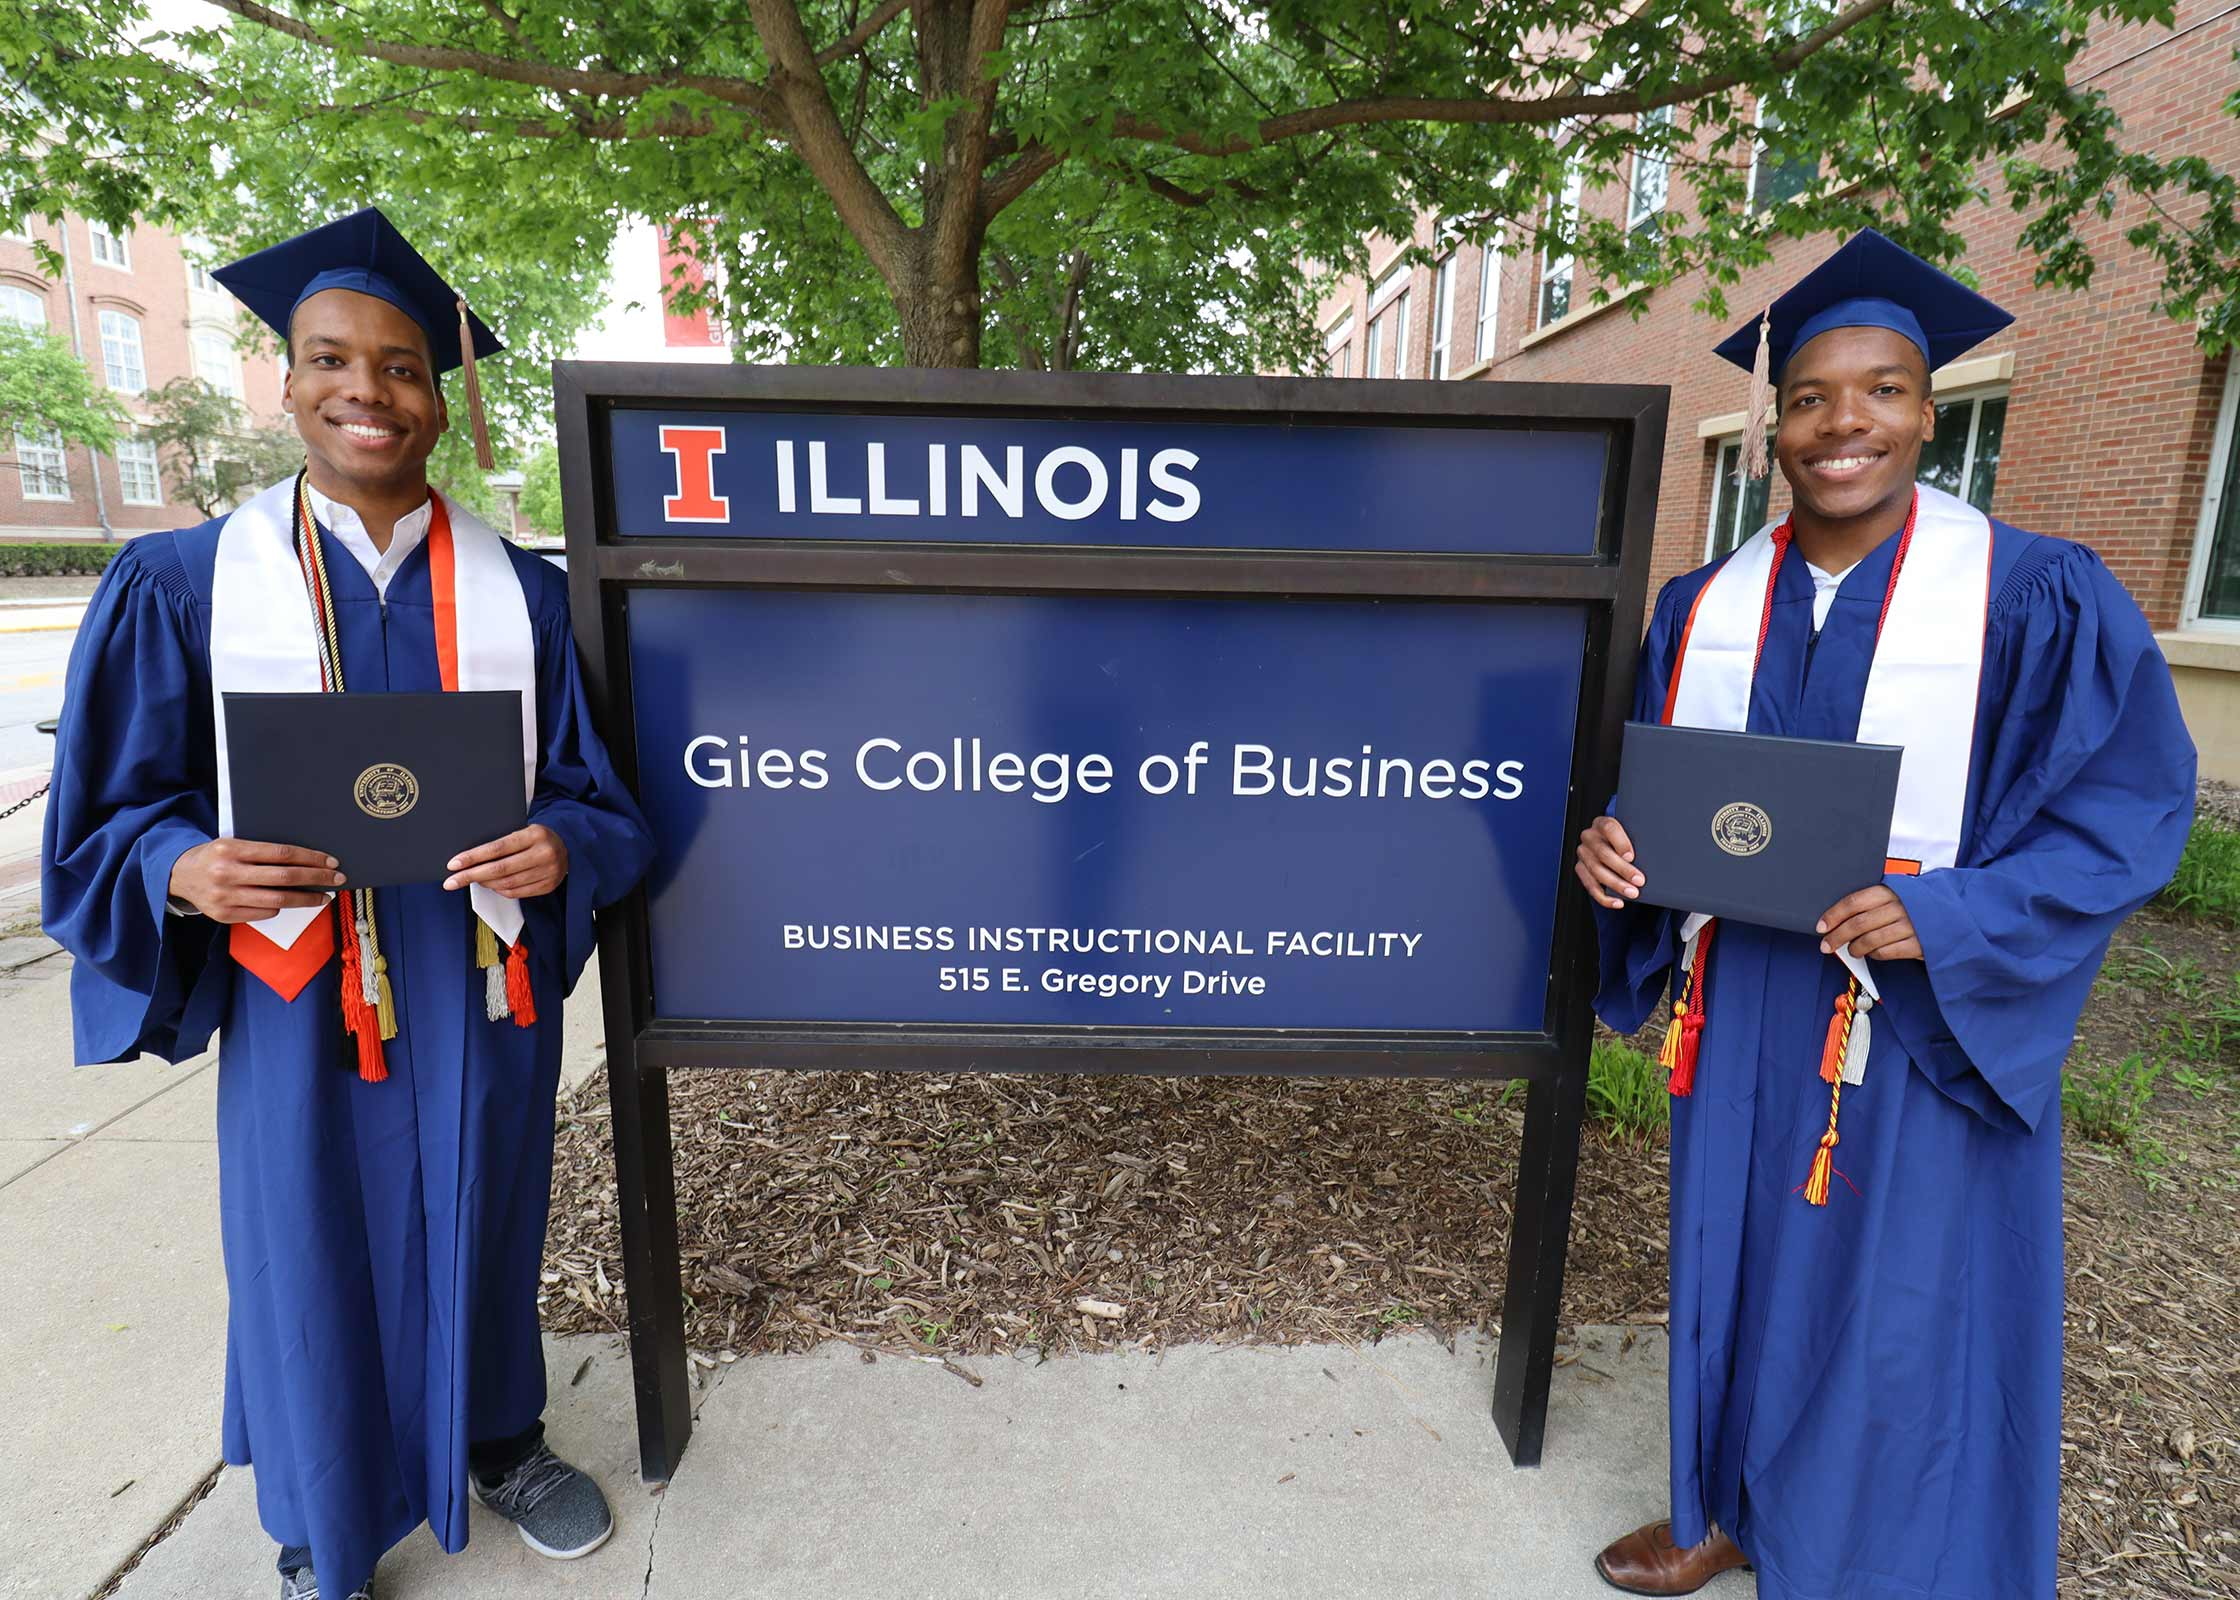 Michael (right) and his brother Robert (left) posing in front of the GIES College of Business sign after Michael's graduation.